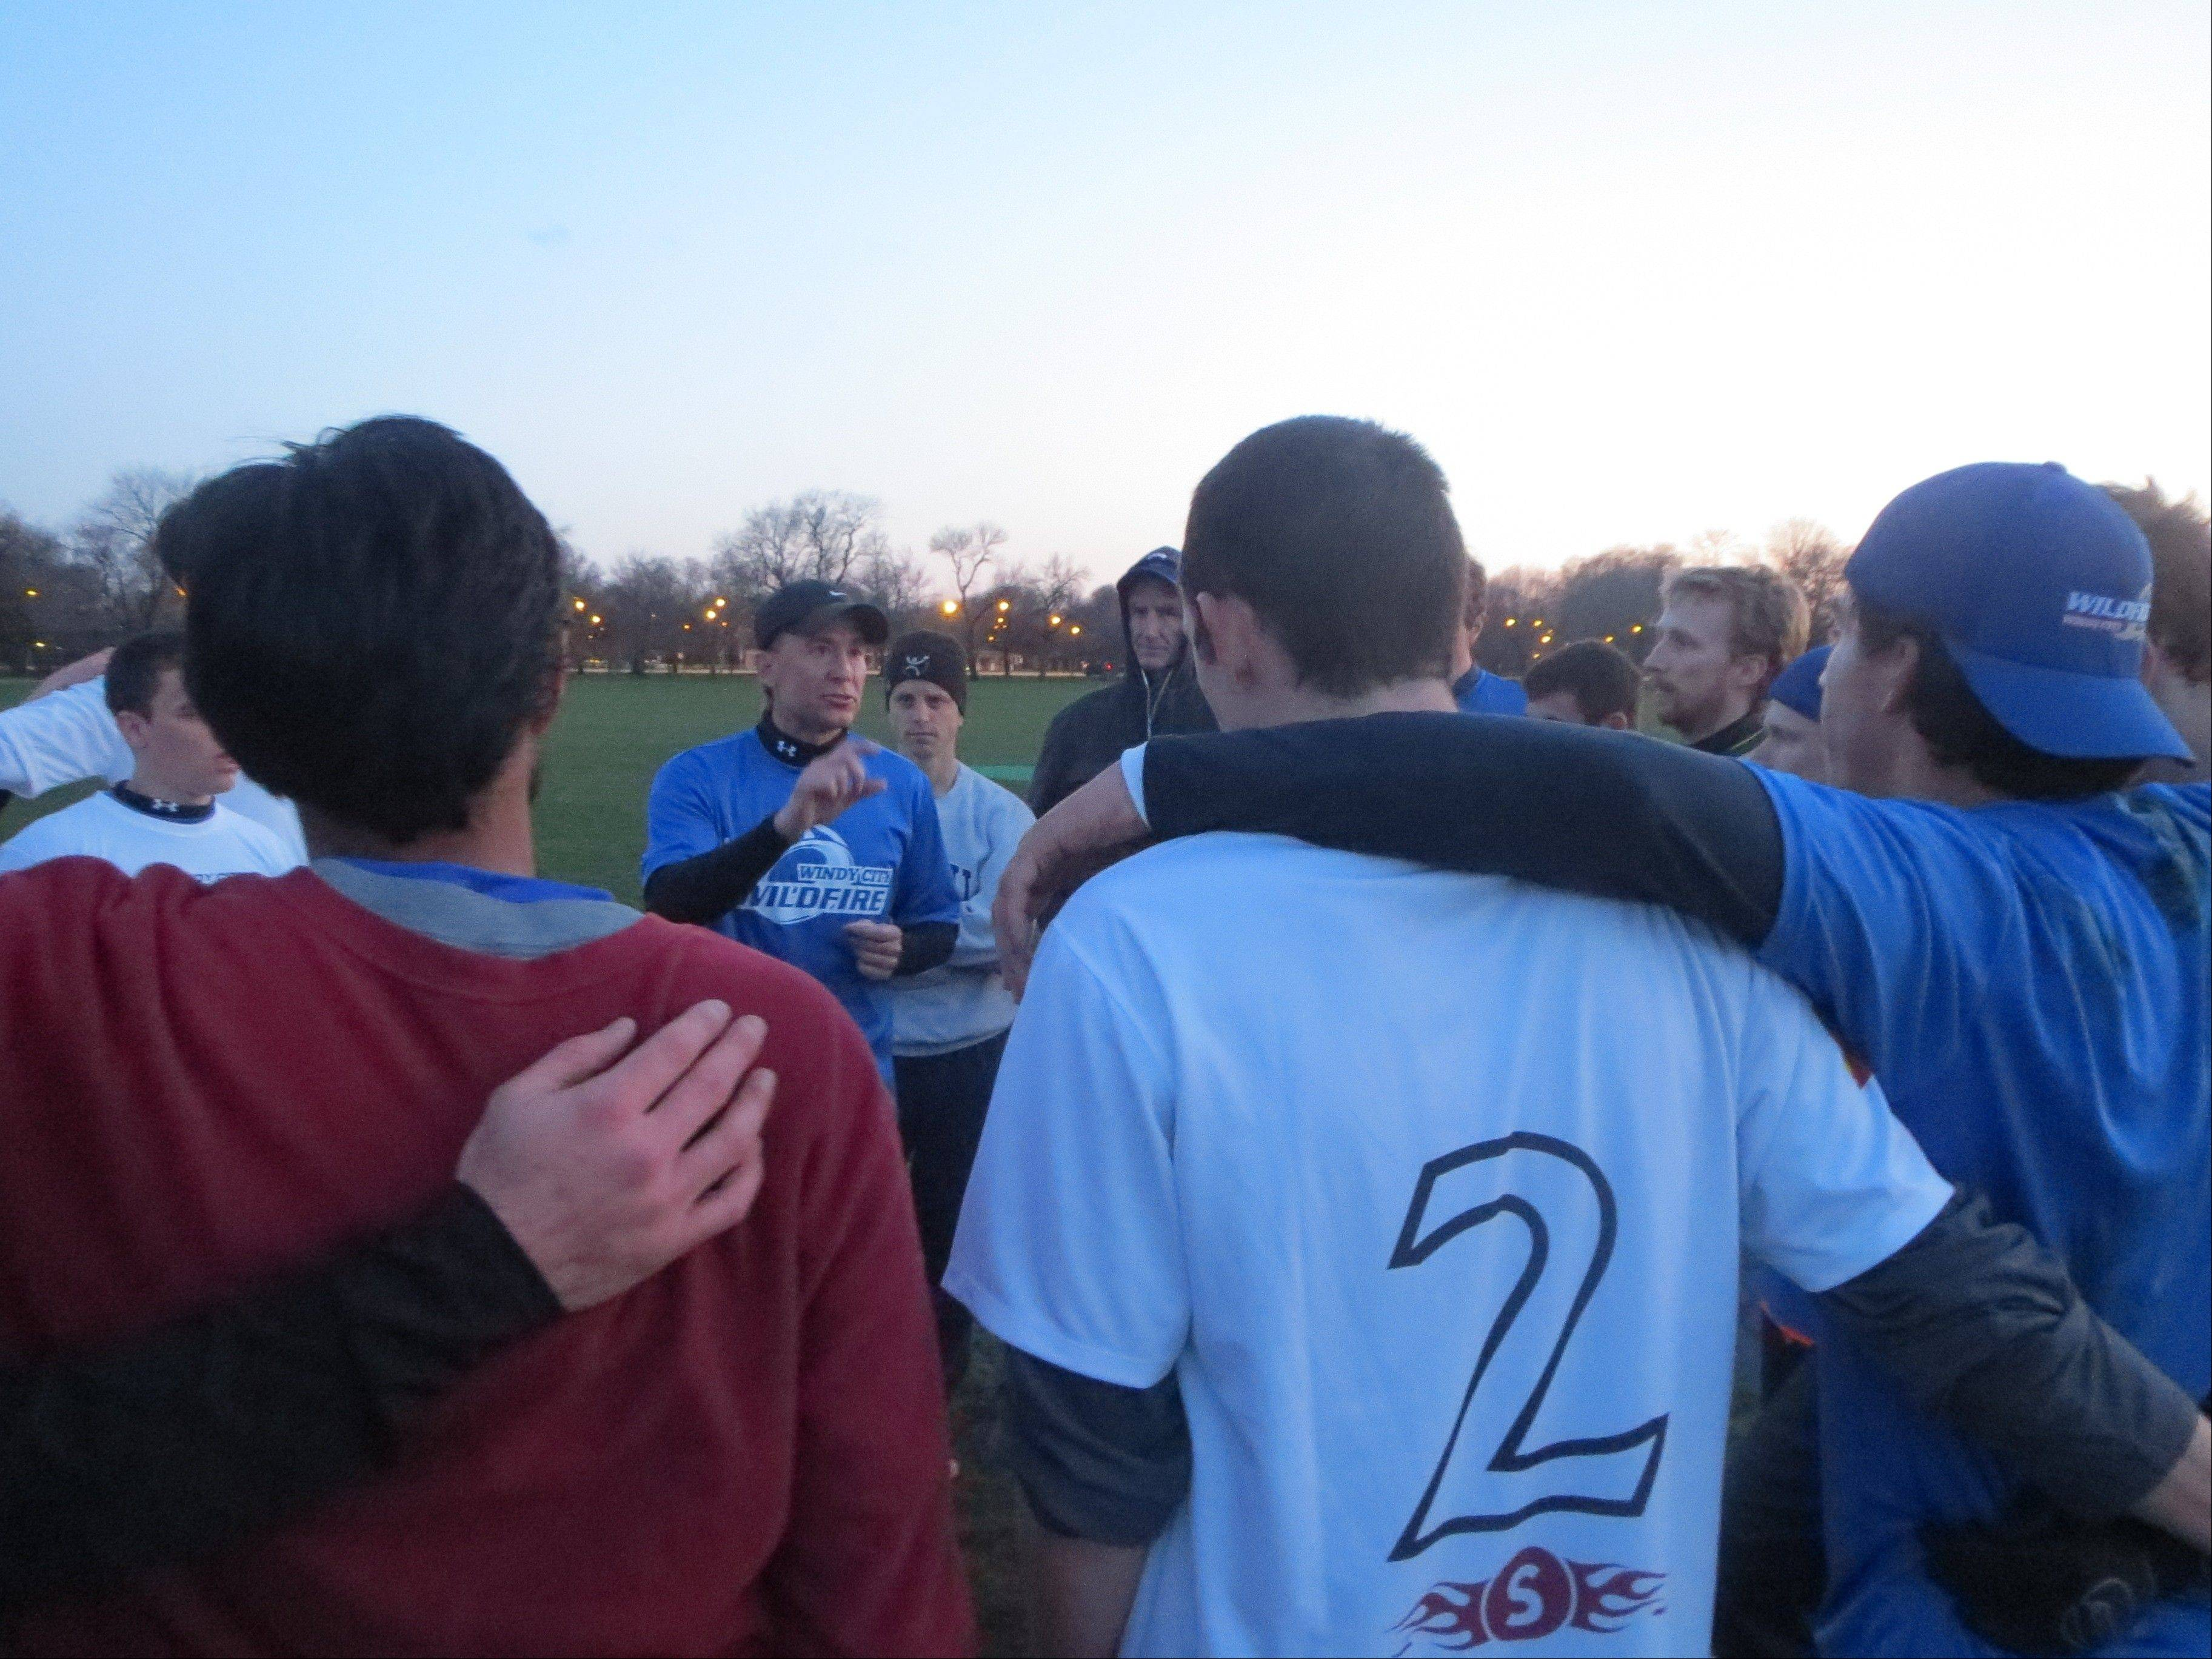 Reviewing points about the value of making good cuts in the game of Ultimate, head coach John Hock of Naperville (wearing hat in center) addresses players on the Windy City Wildfire, Chicago's newest professional sports franchise.